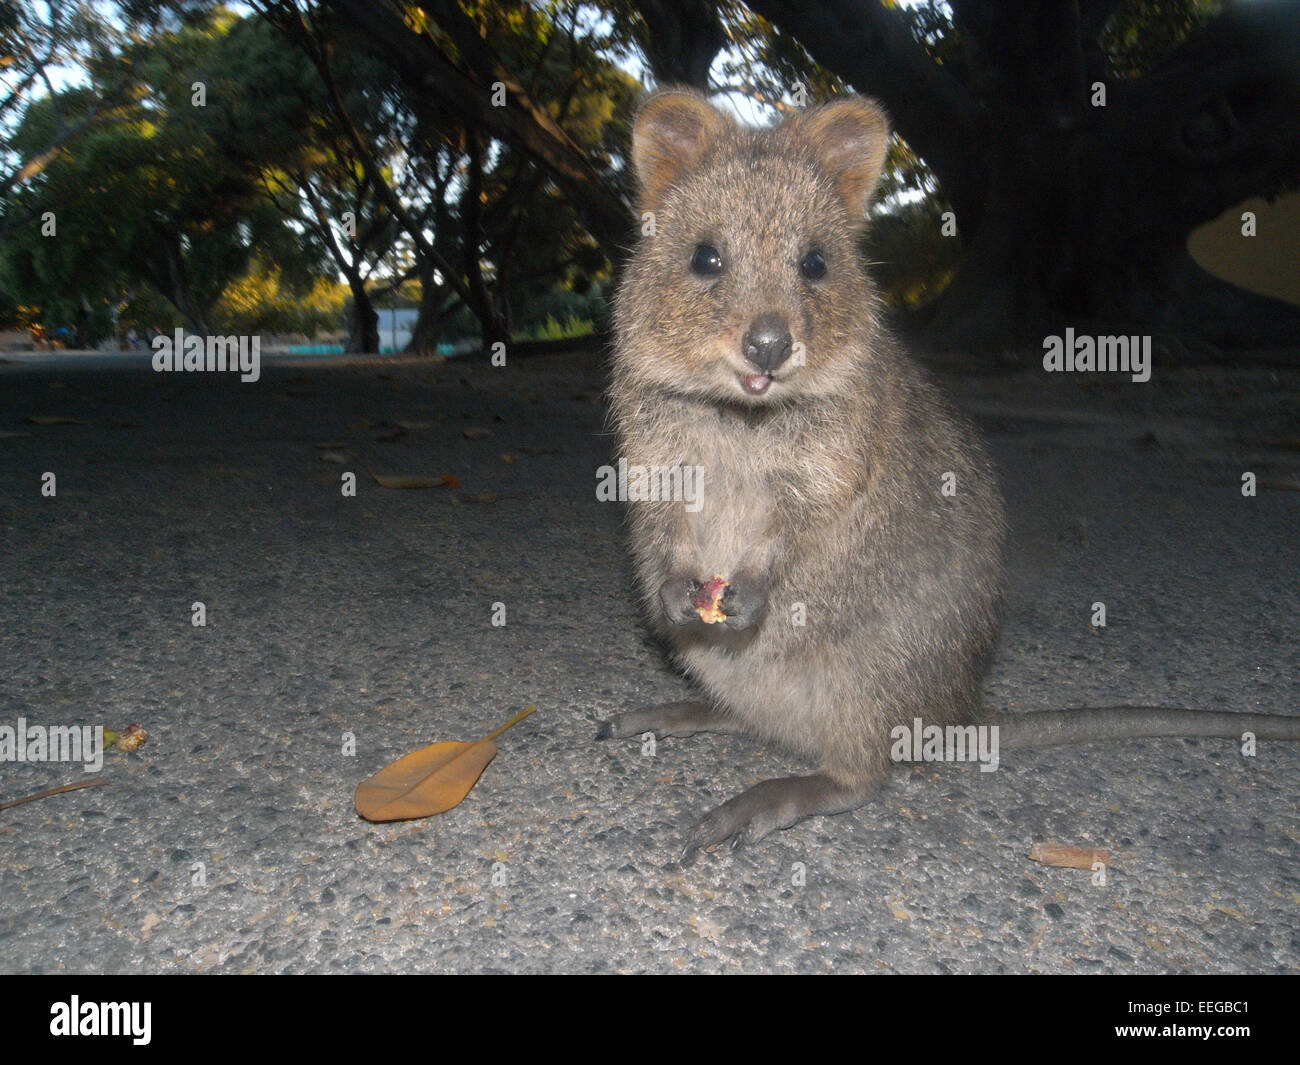 Quokka (Setonix brachyurus) eating fallen figs in the street, Rottnest Island, Western AustraliaStock Photo